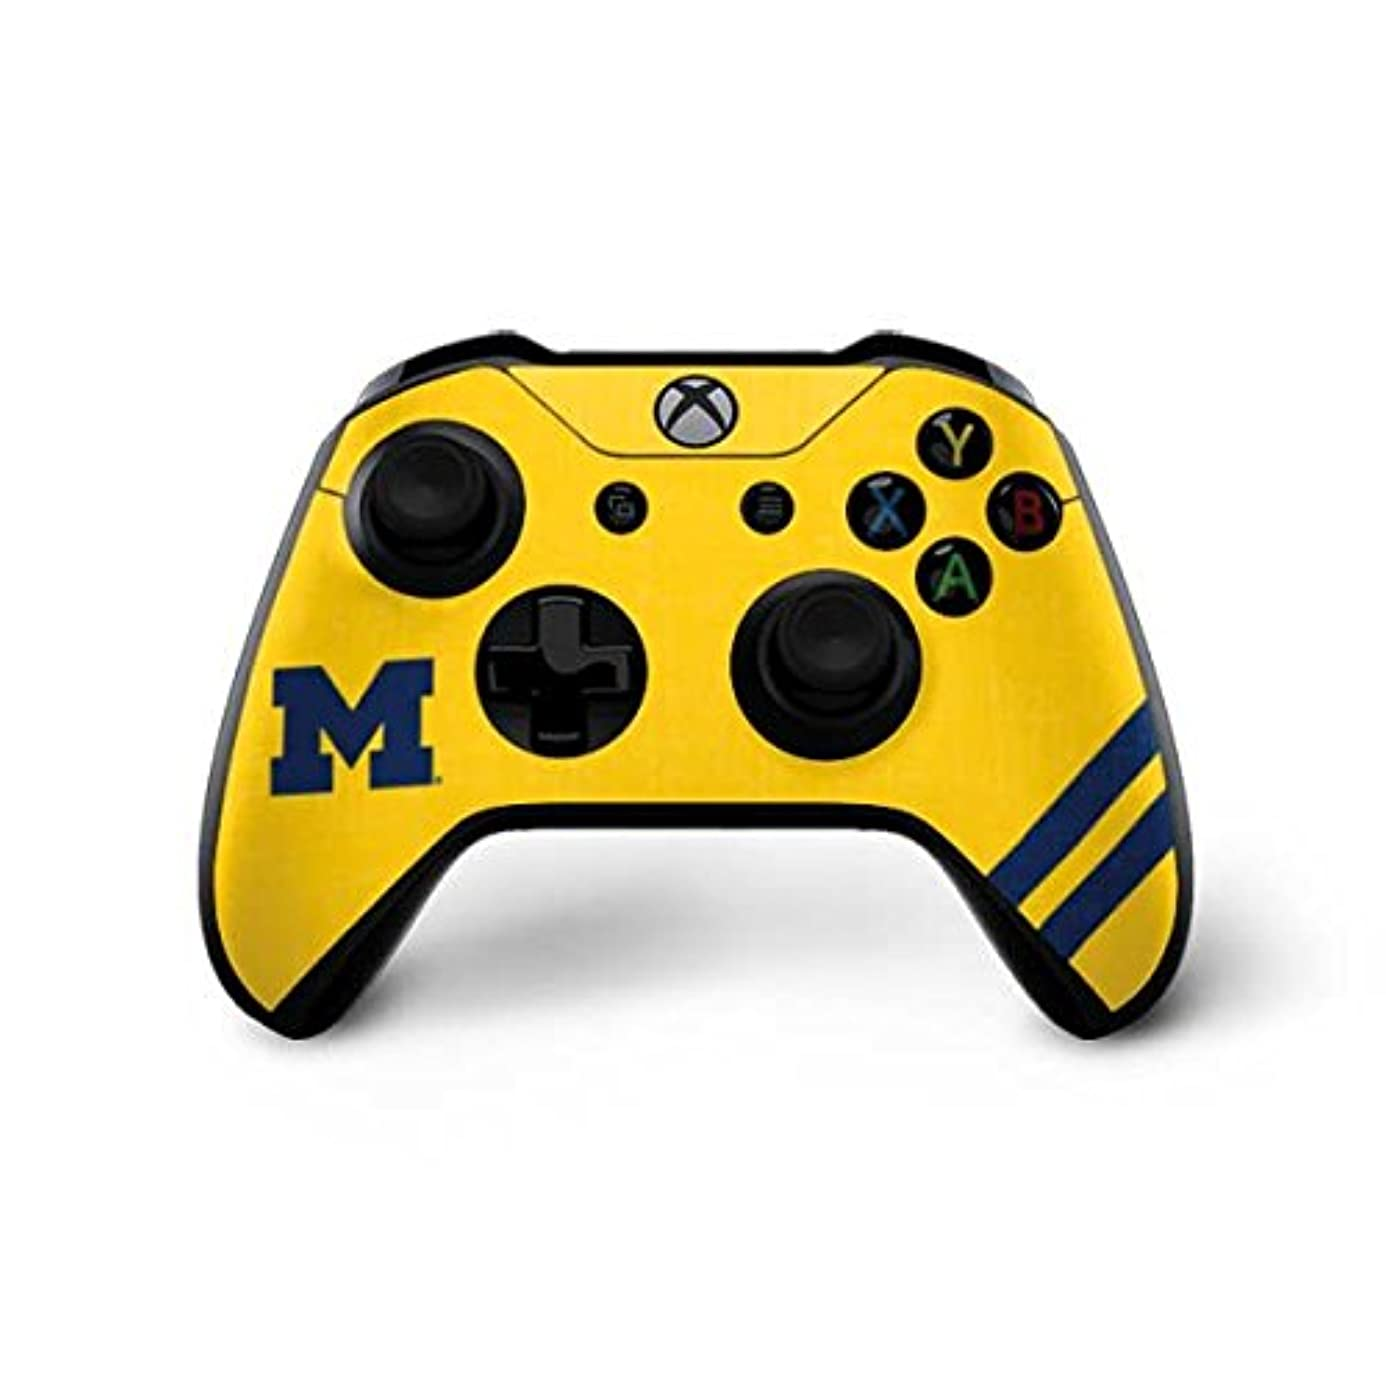 Skinit Michigan Large Logo Xbox One X Controller Skin - Officially Licensed College Gaming Decal - Ultra Thin, Lightweight Vinyl Decal Protection